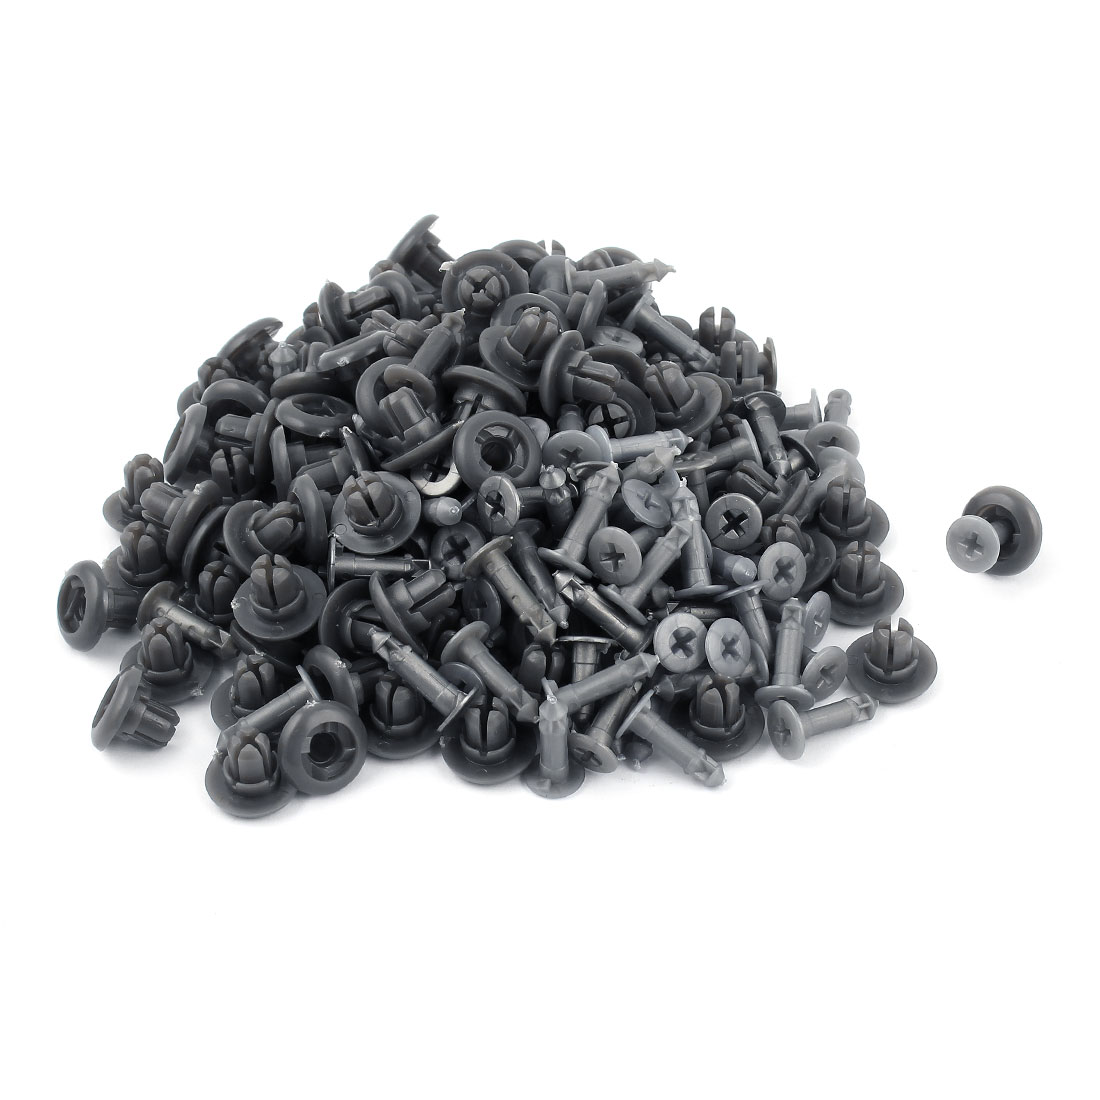 100 Pcs Car Interior Panel Trim Clips Plastic Rivet Gray 10mm Hole